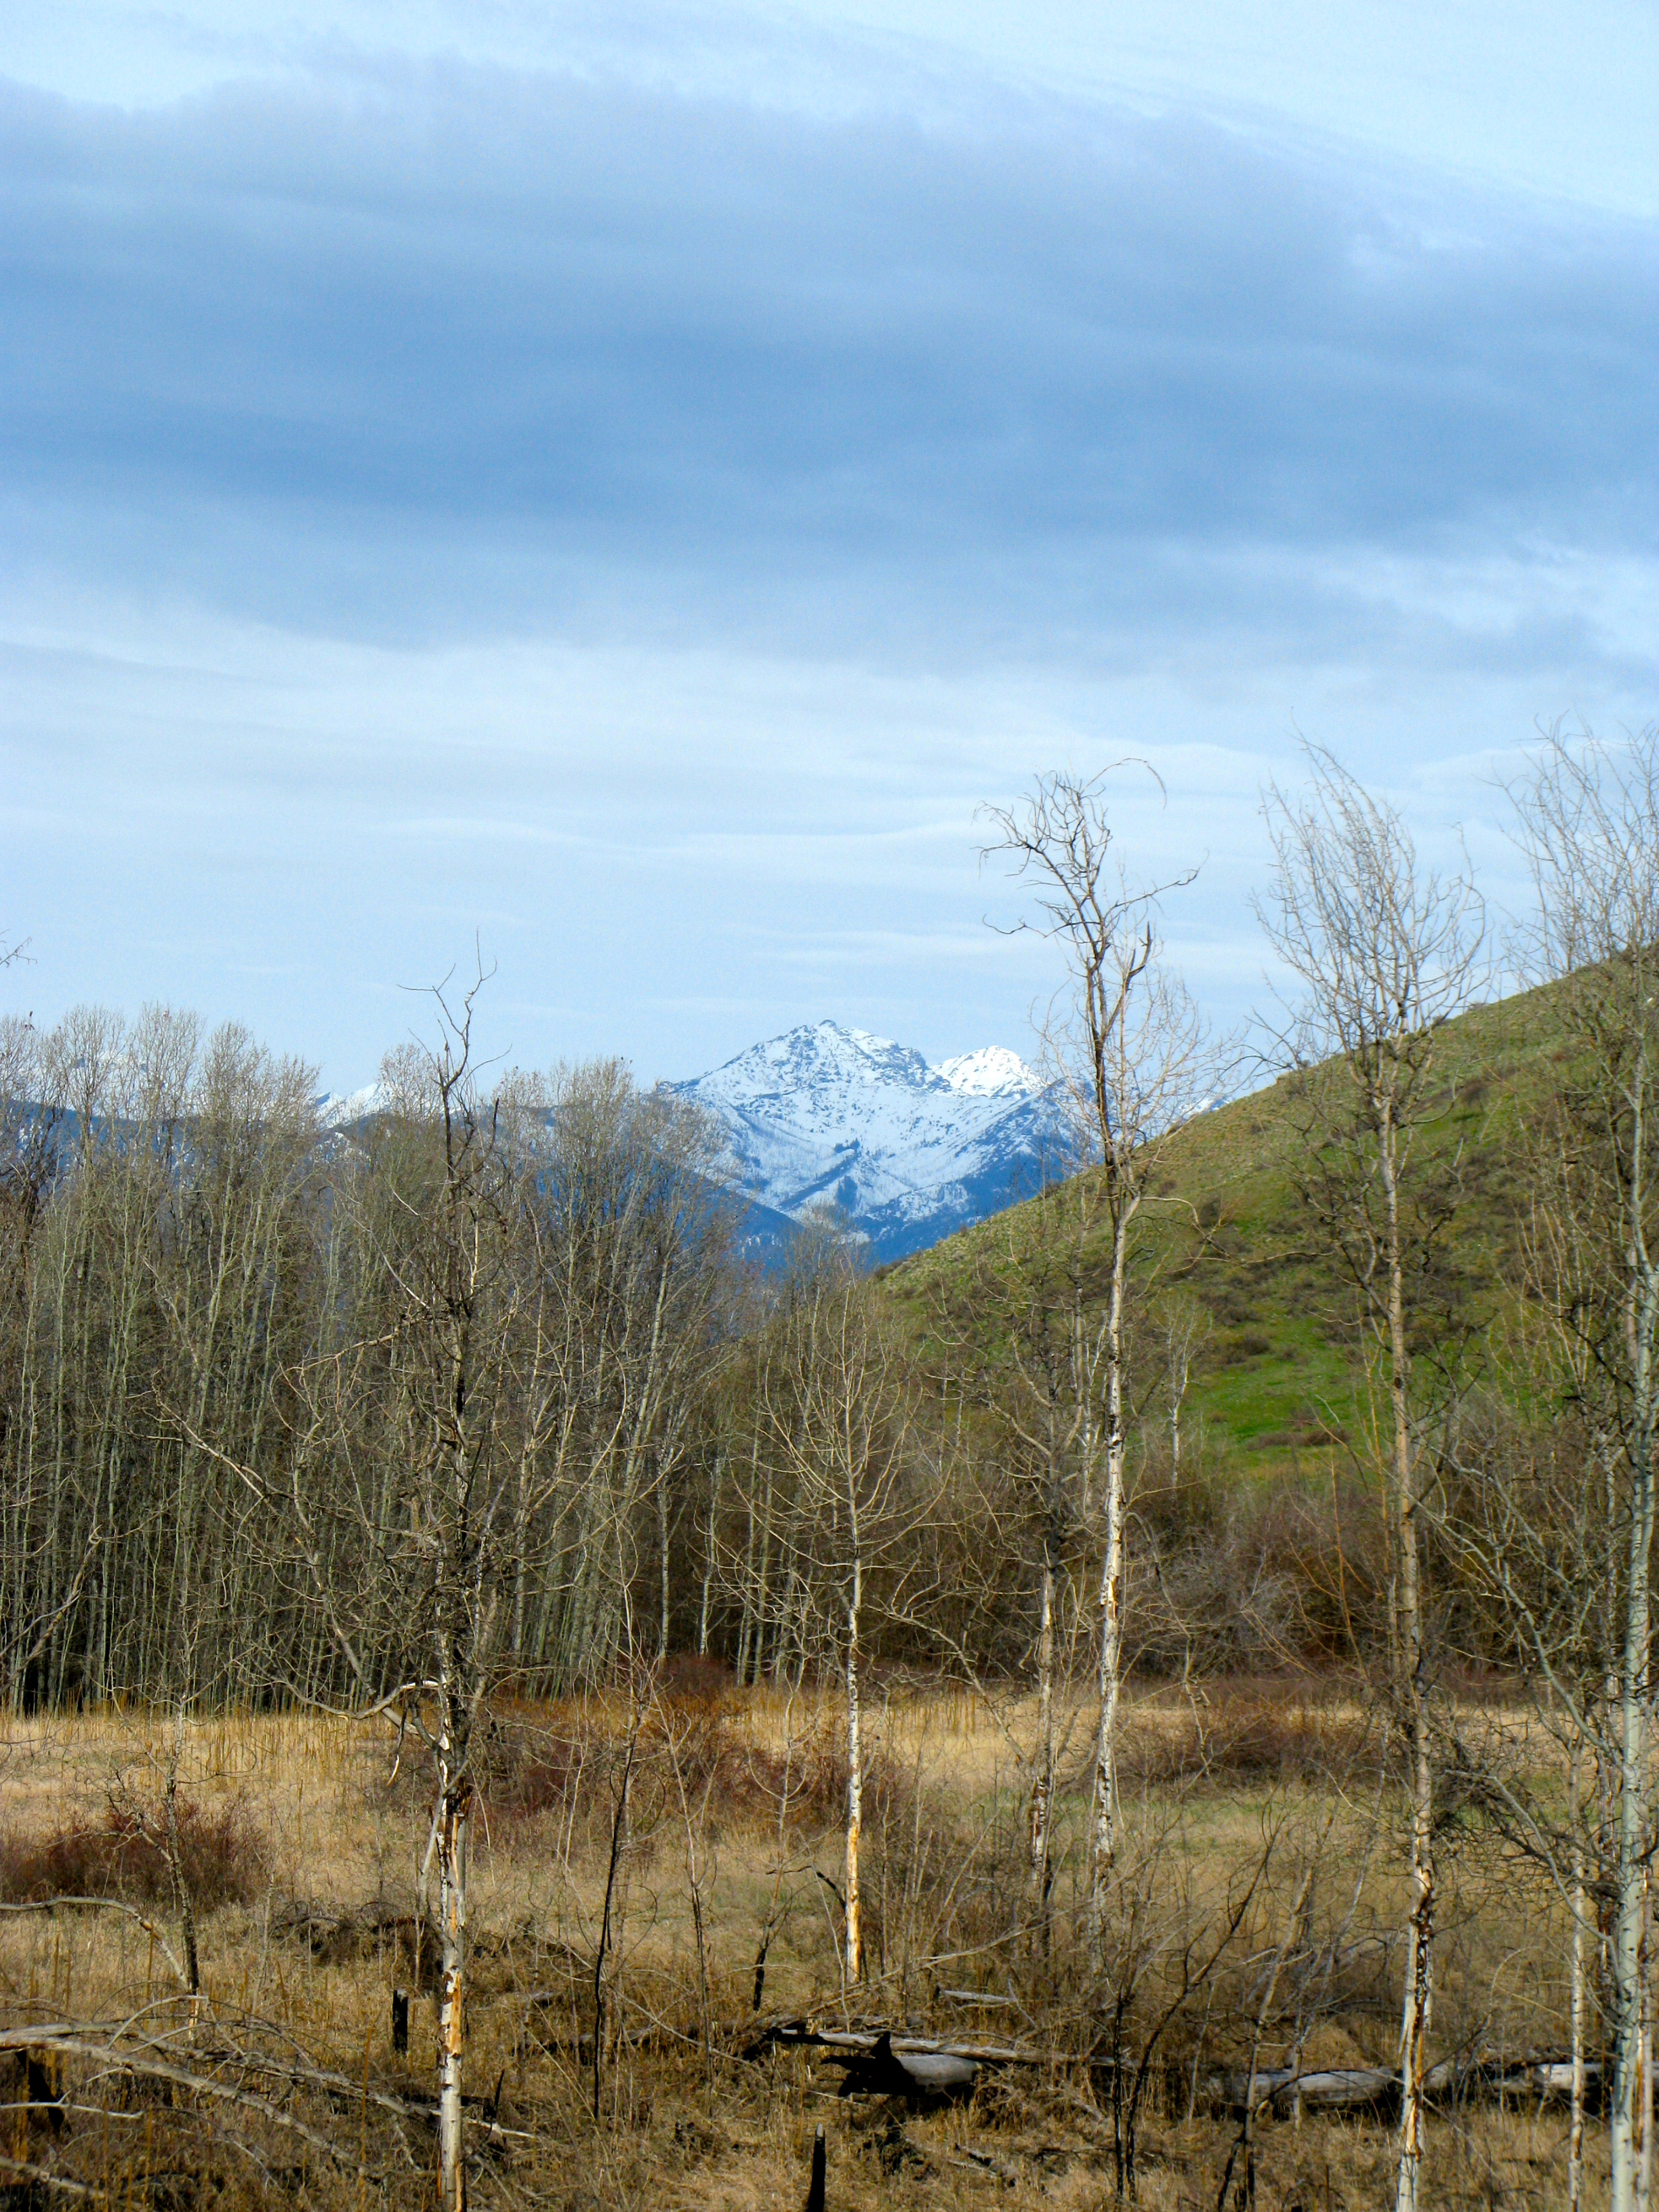 The hills are greening up! Mt. Gardner in the background. Photo courtesy of Pat Leigh.